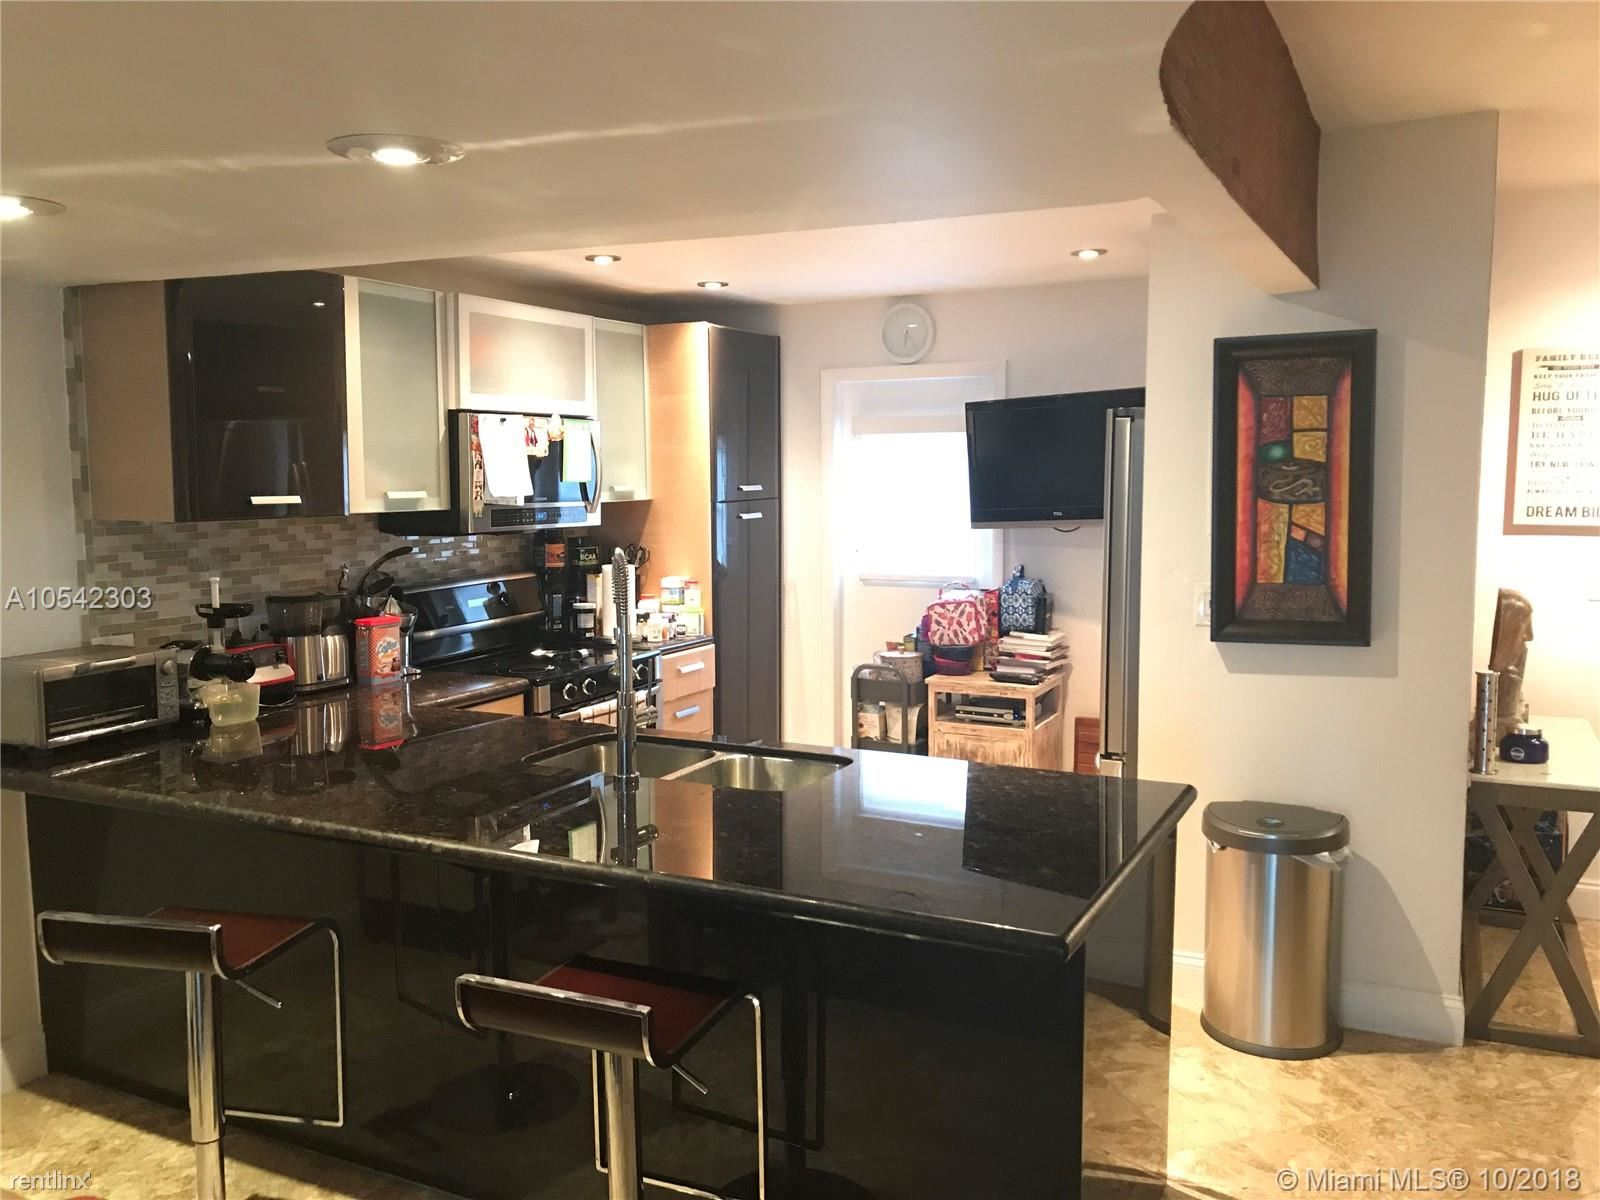 3745 NE 171st St Apt 32, North Miami Beach, FL - $2,100 USD/ month